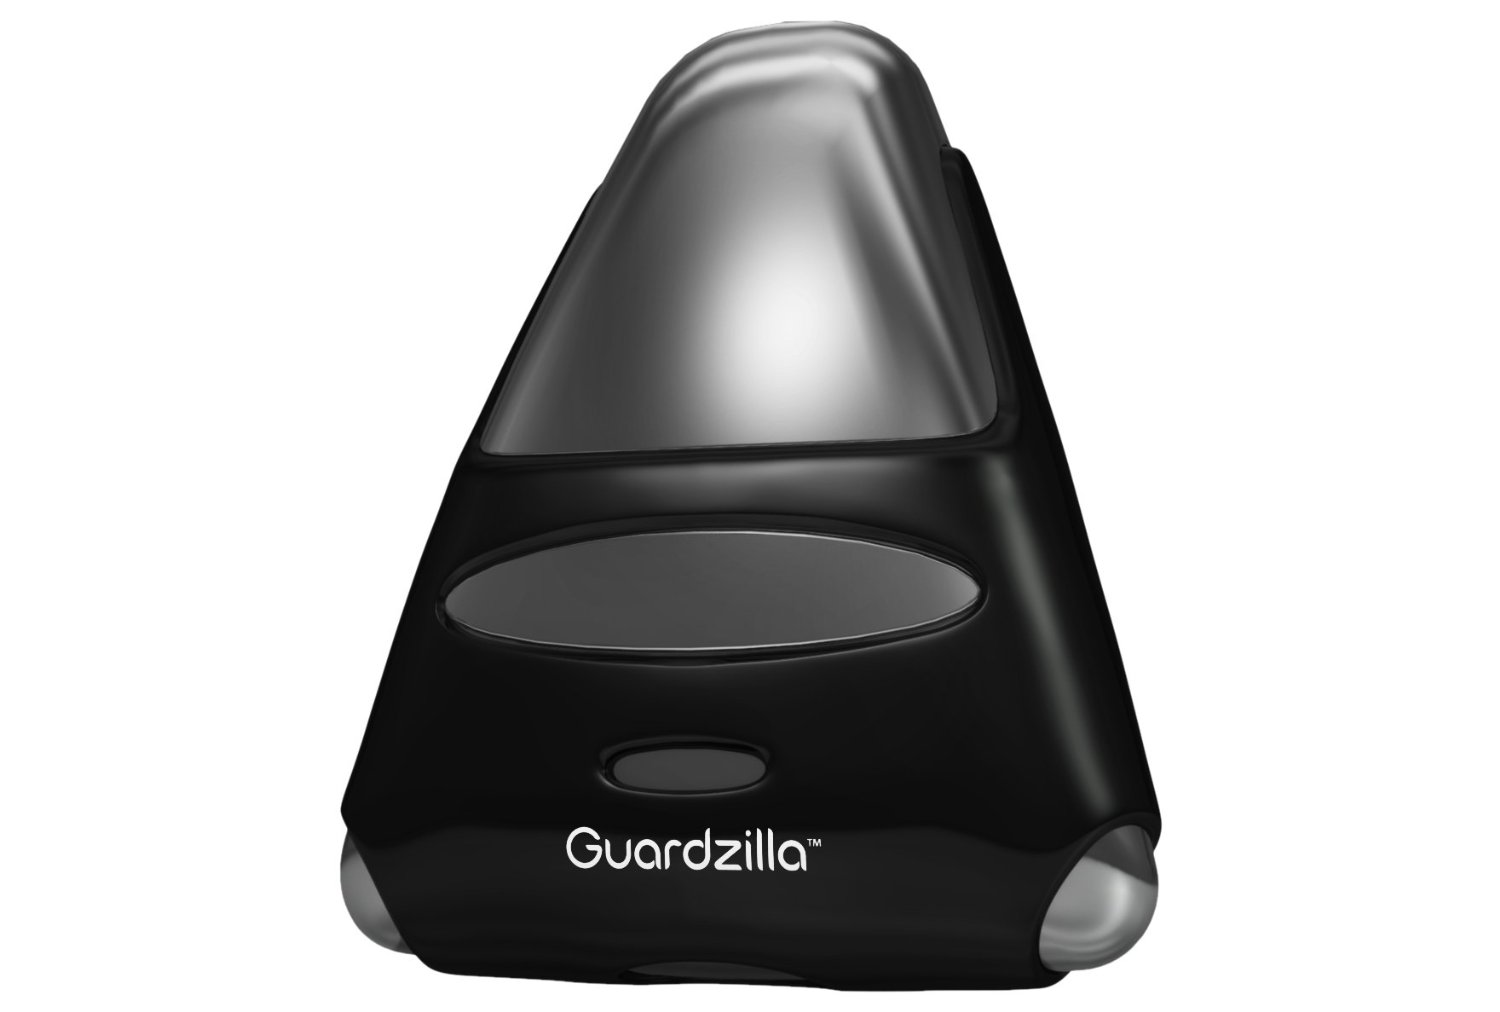 Guardzilla Nanny Cams